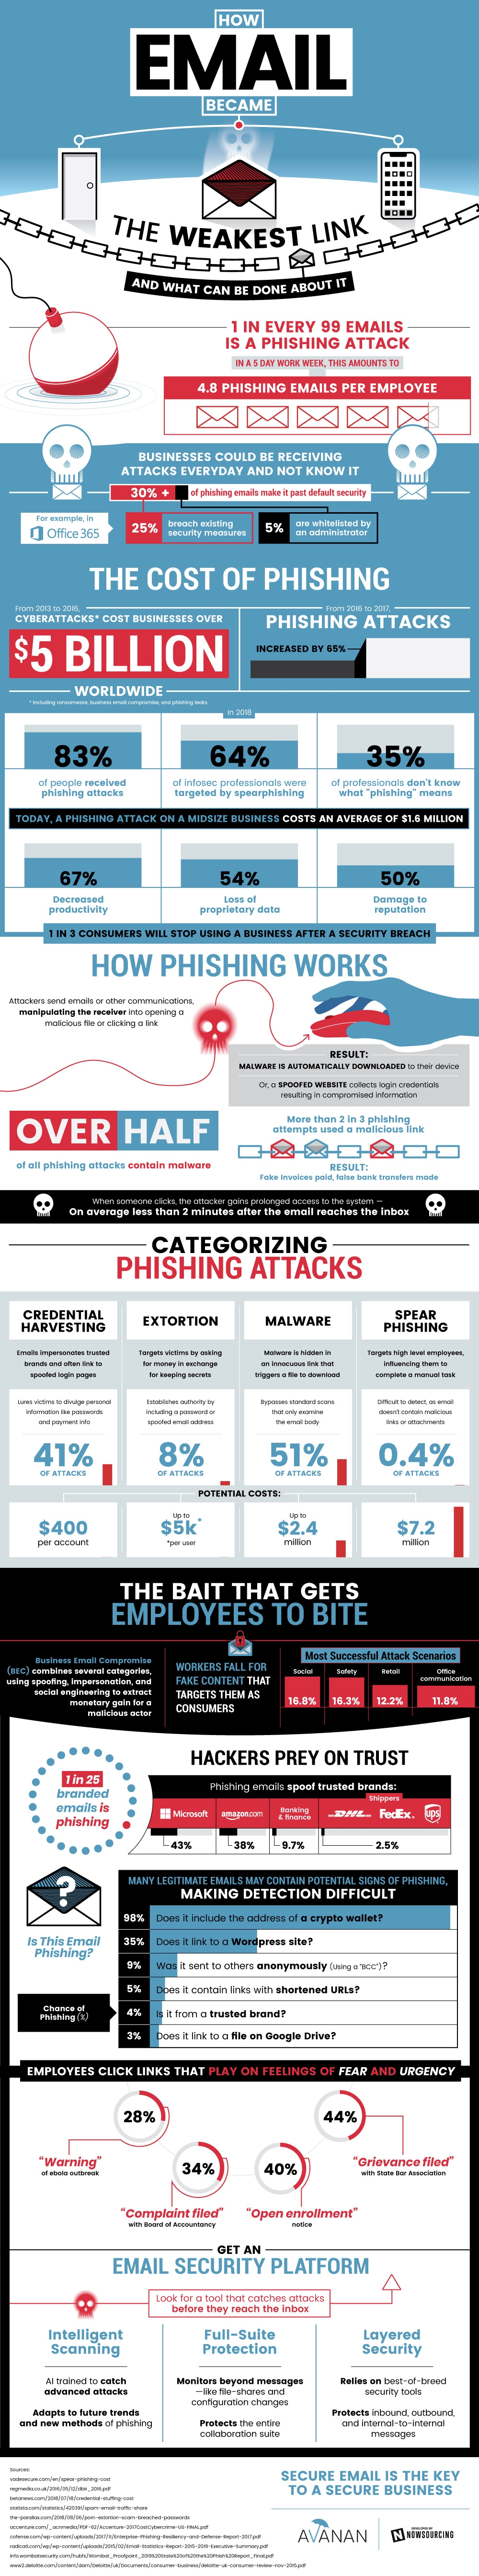 Is Your Email The Weakest Link? [Infographic]